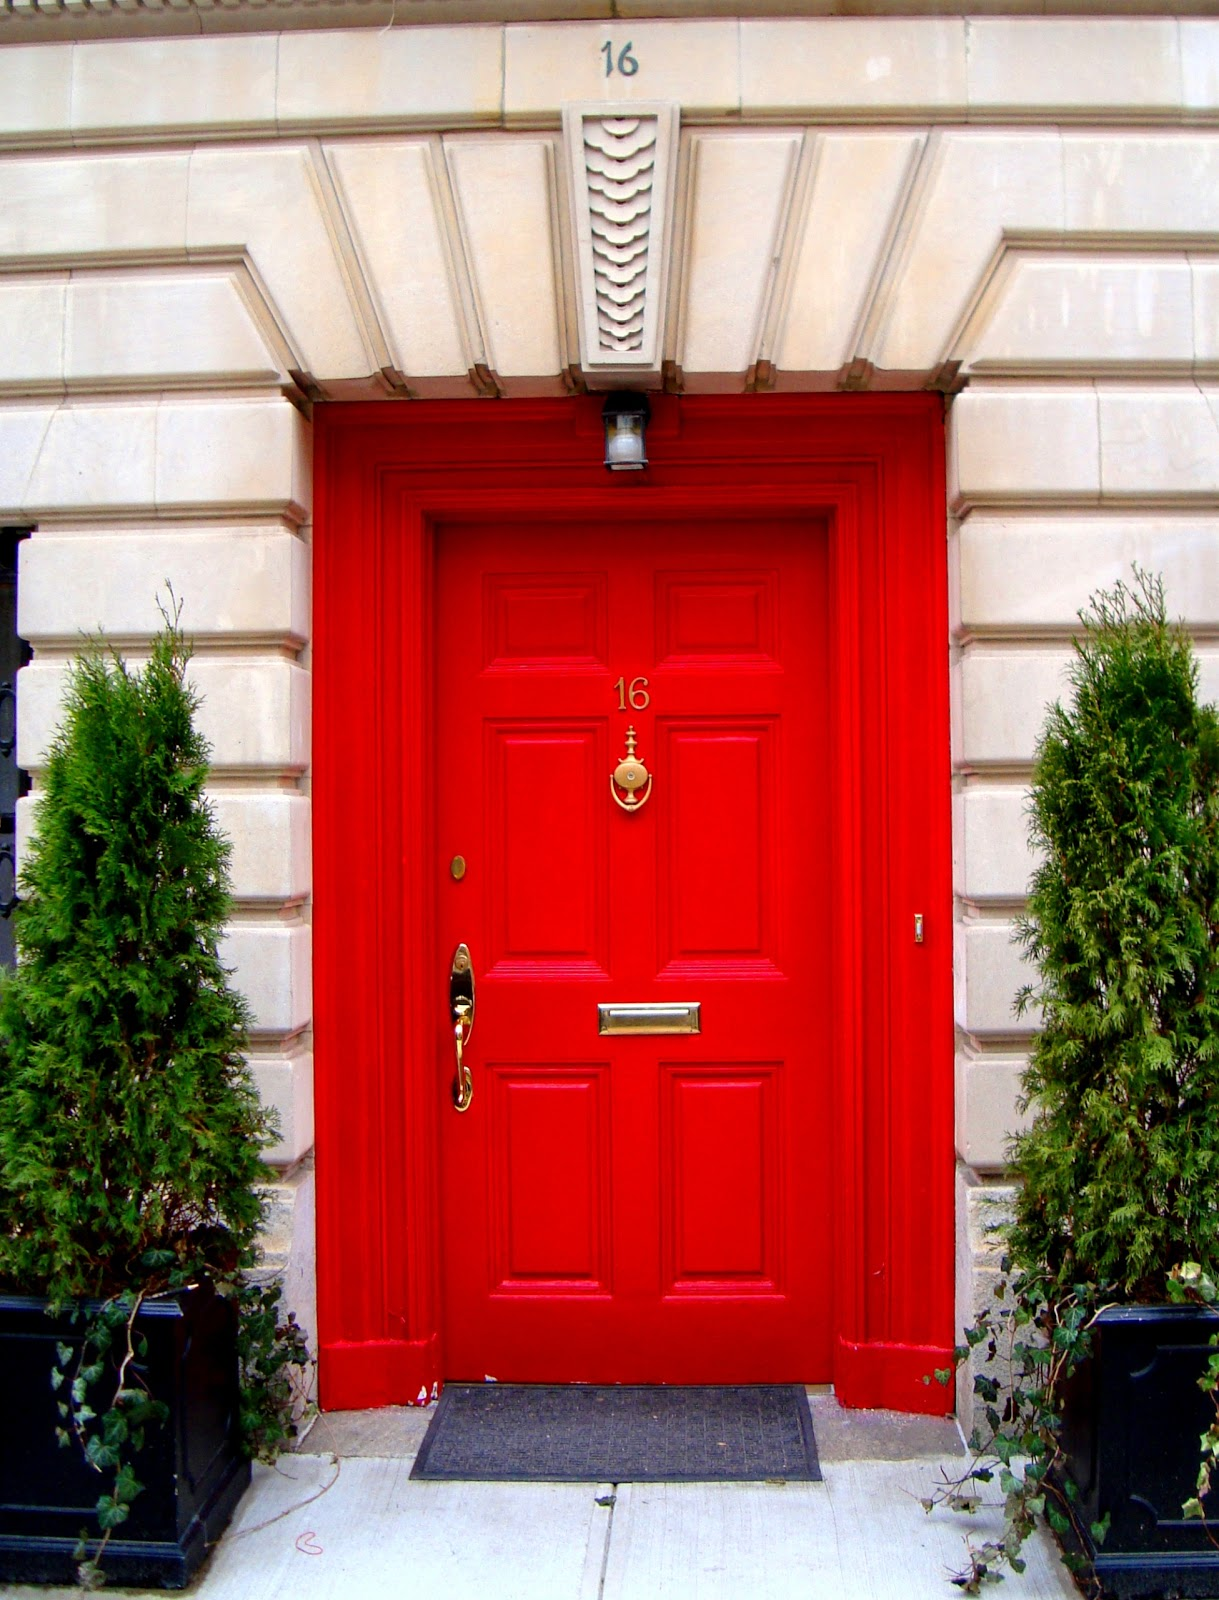 David cobb craig red doors of the upper east side for Side doors for houses